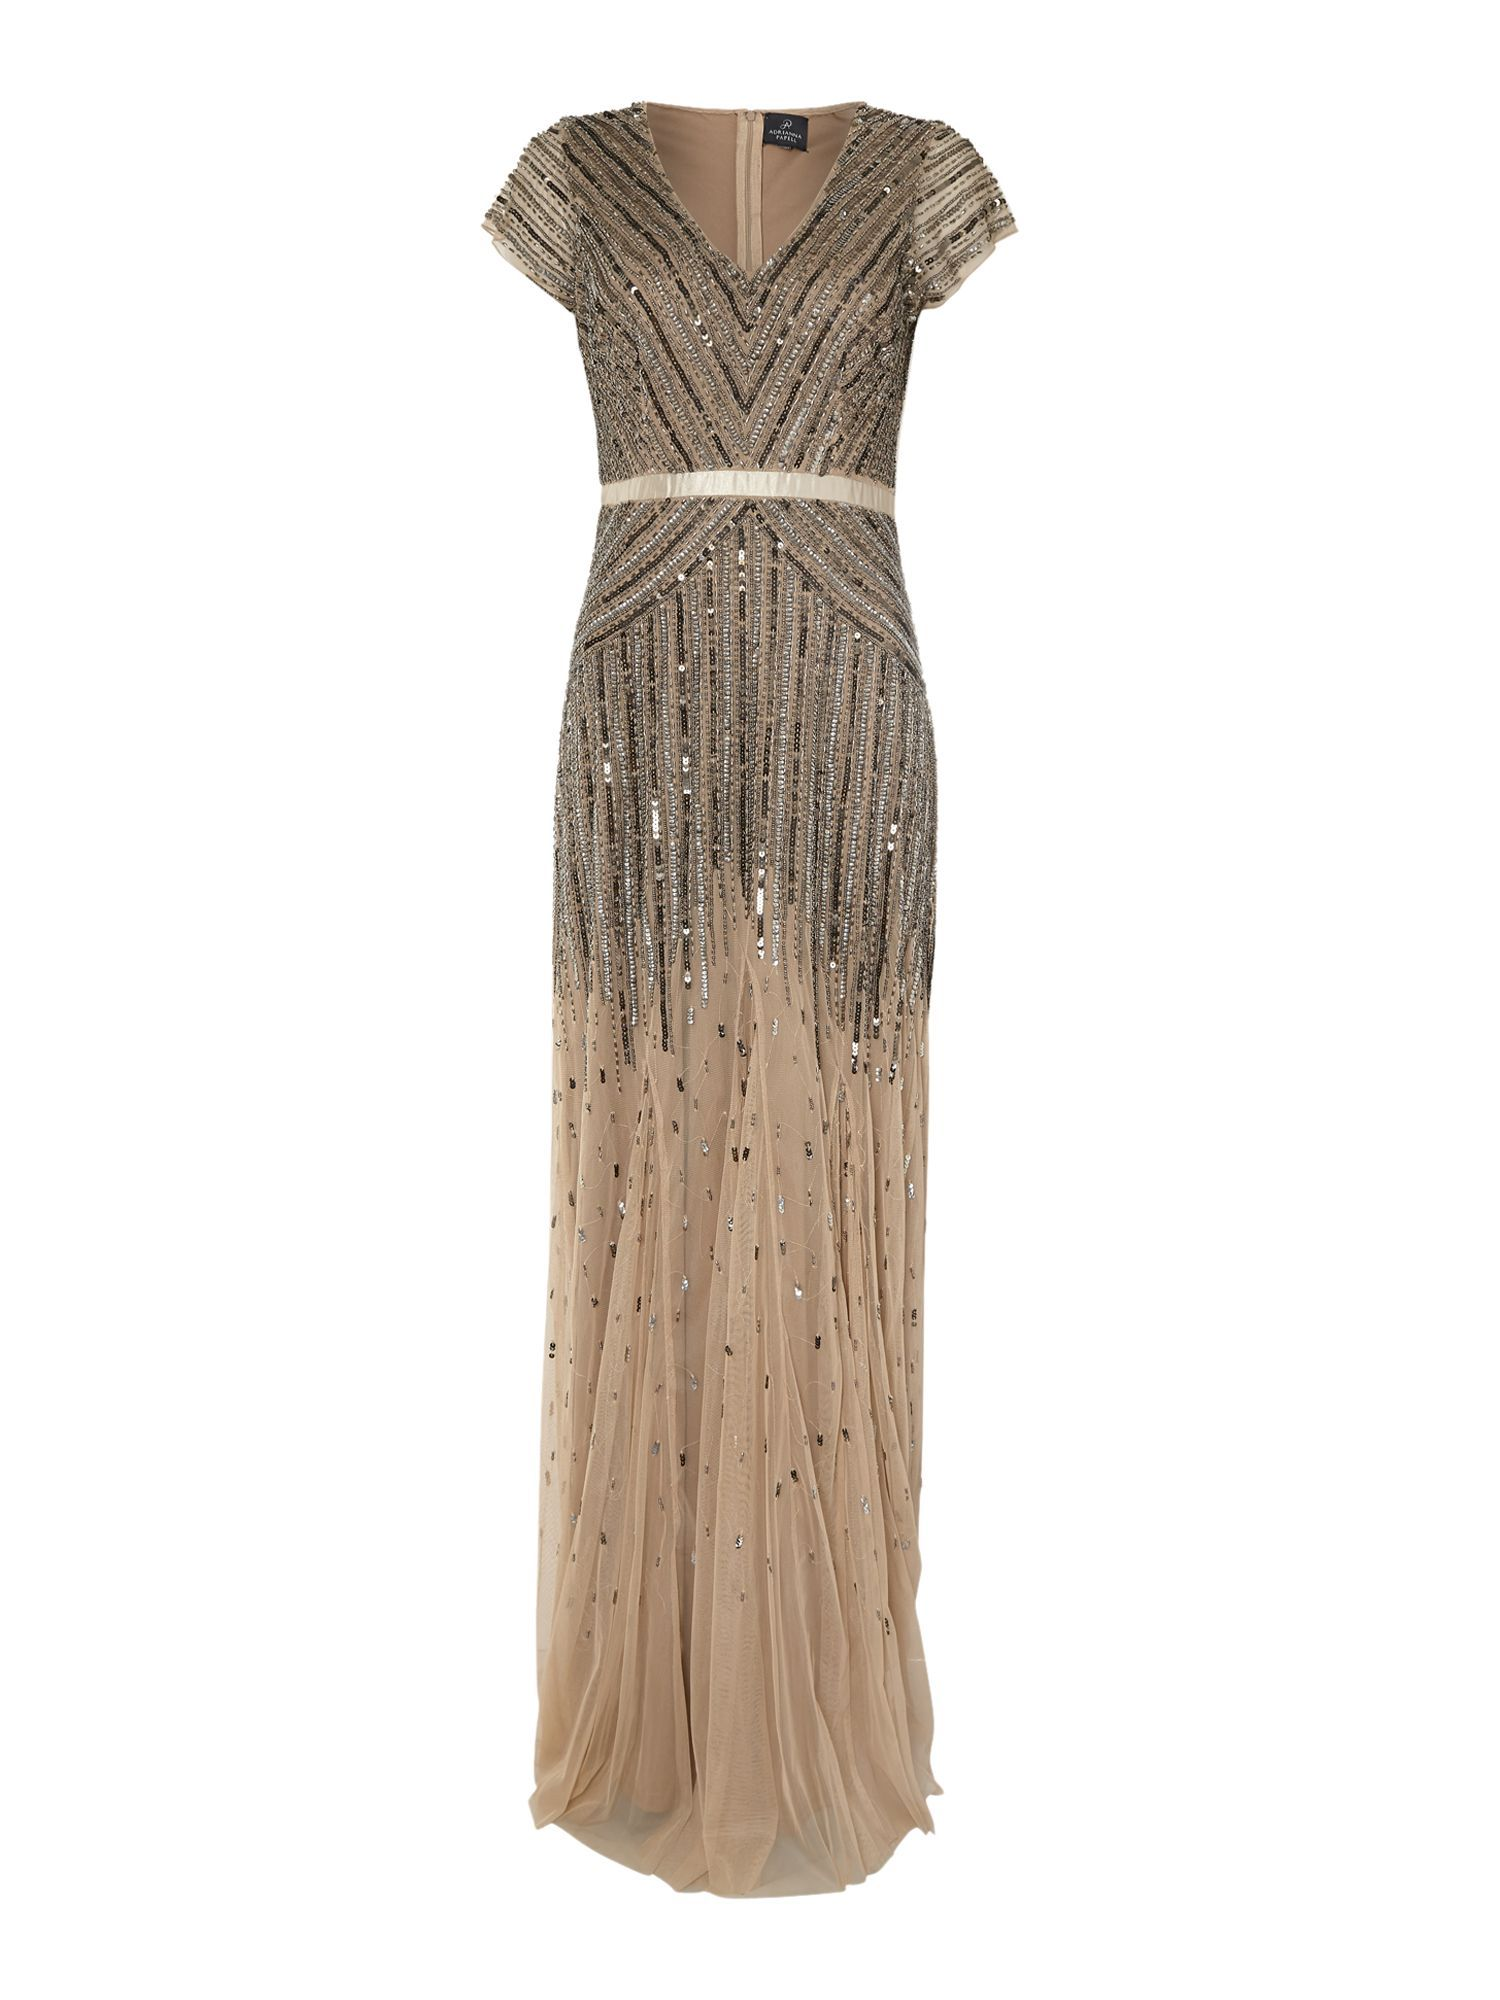 1920s Dresses UK | 1920s style dresses, 1920s style and Downton abbey